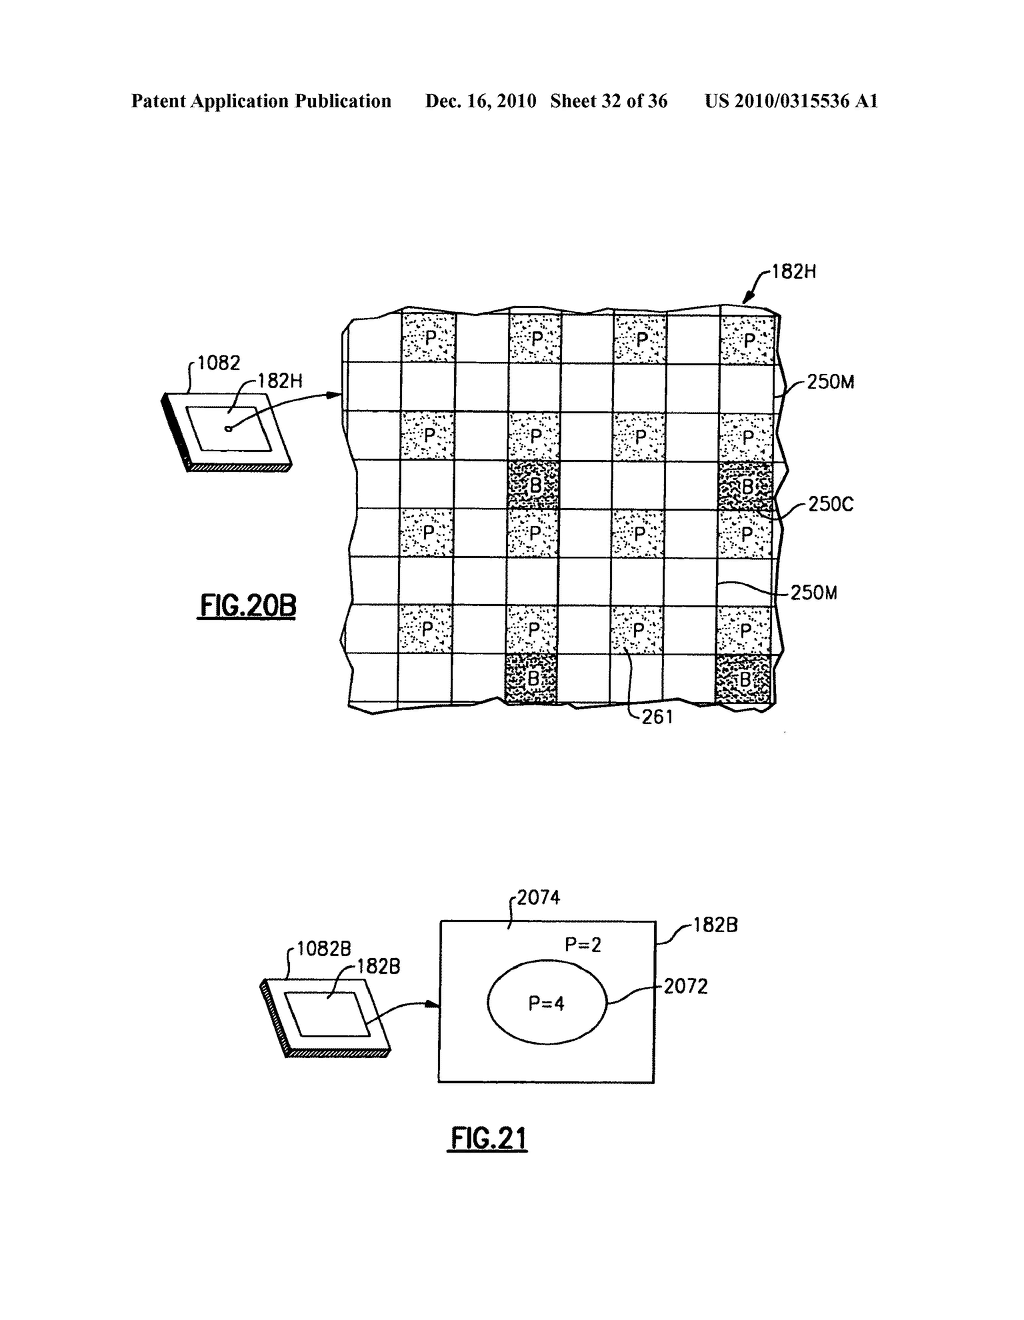 METHOD UTILIZING DIGITAL PICTURE TAKING OPTICAL READER HAVING HYBRID MONOCHROME AND COLOR IMAGE SENSOR - diagram, schematic, and image 33